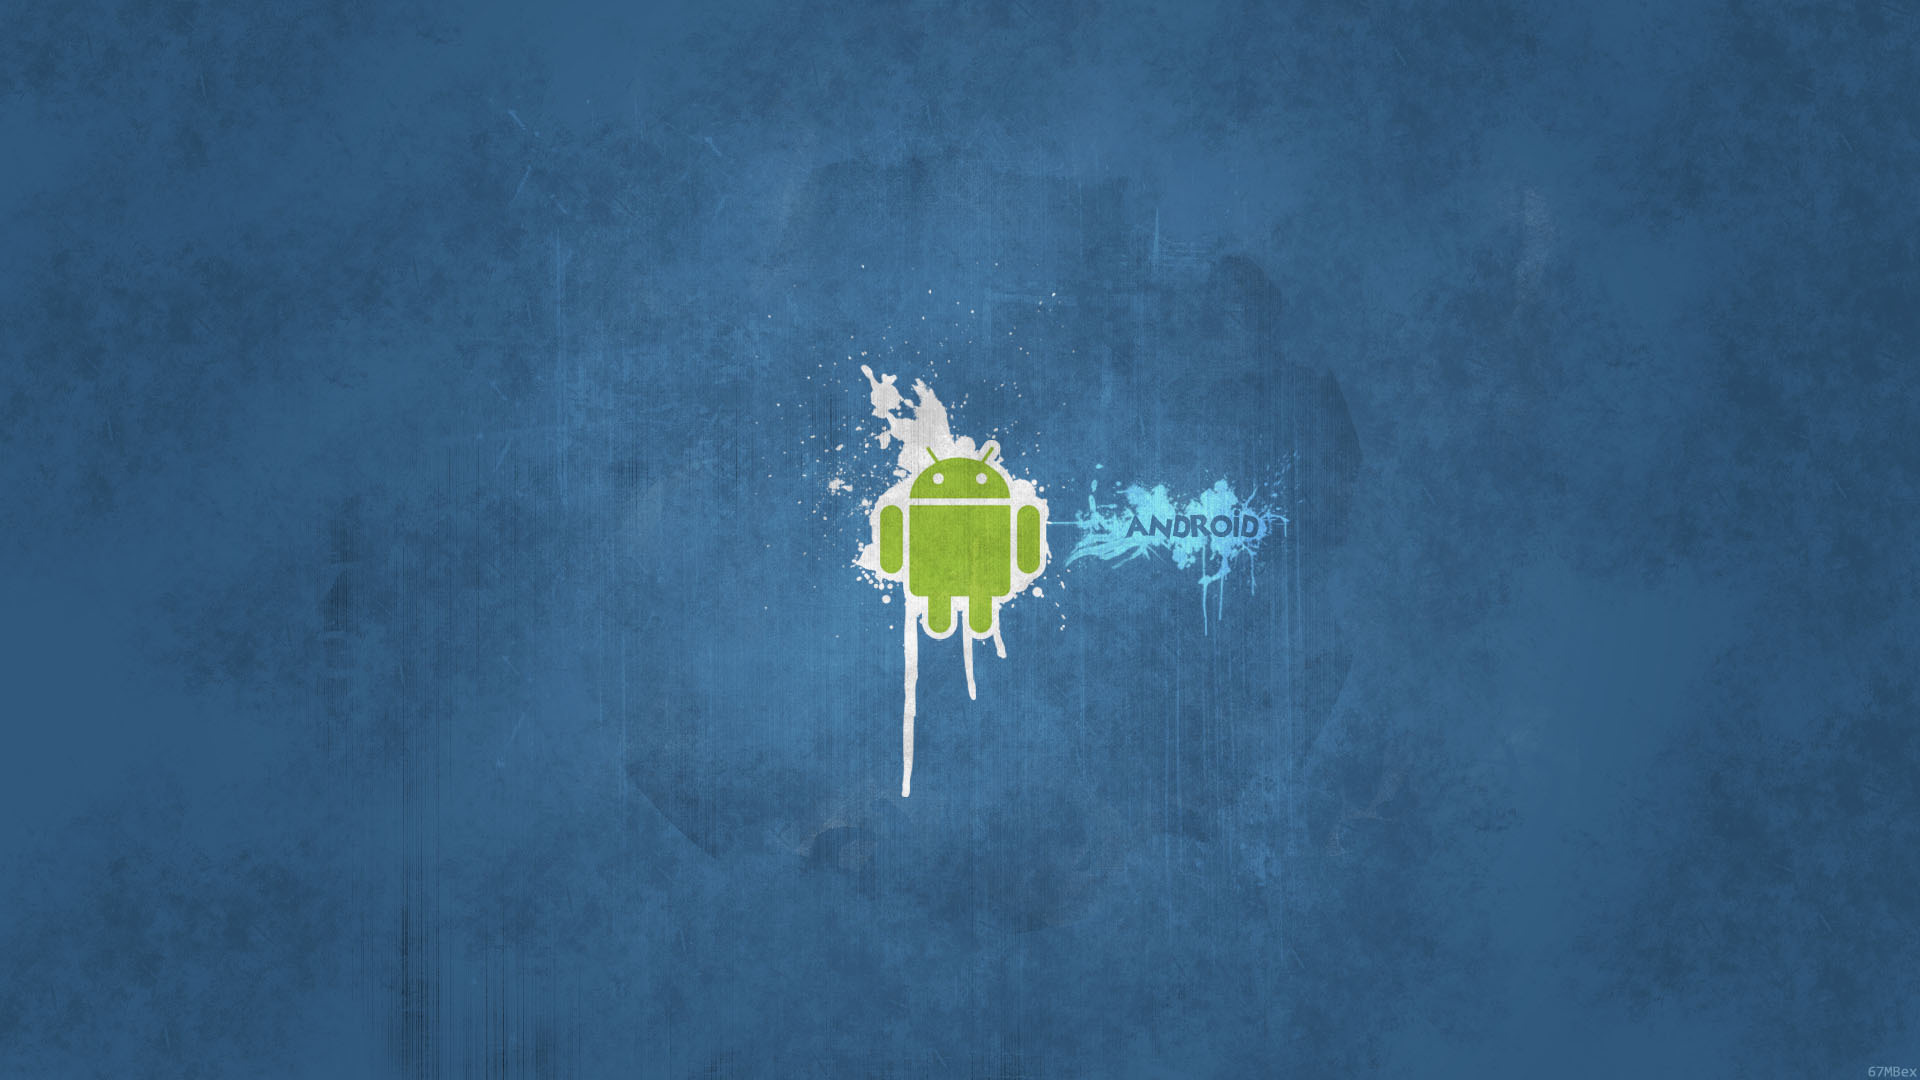 14829 download wallpaper Brands, Background, Logos, Android screensavers and pictures for free